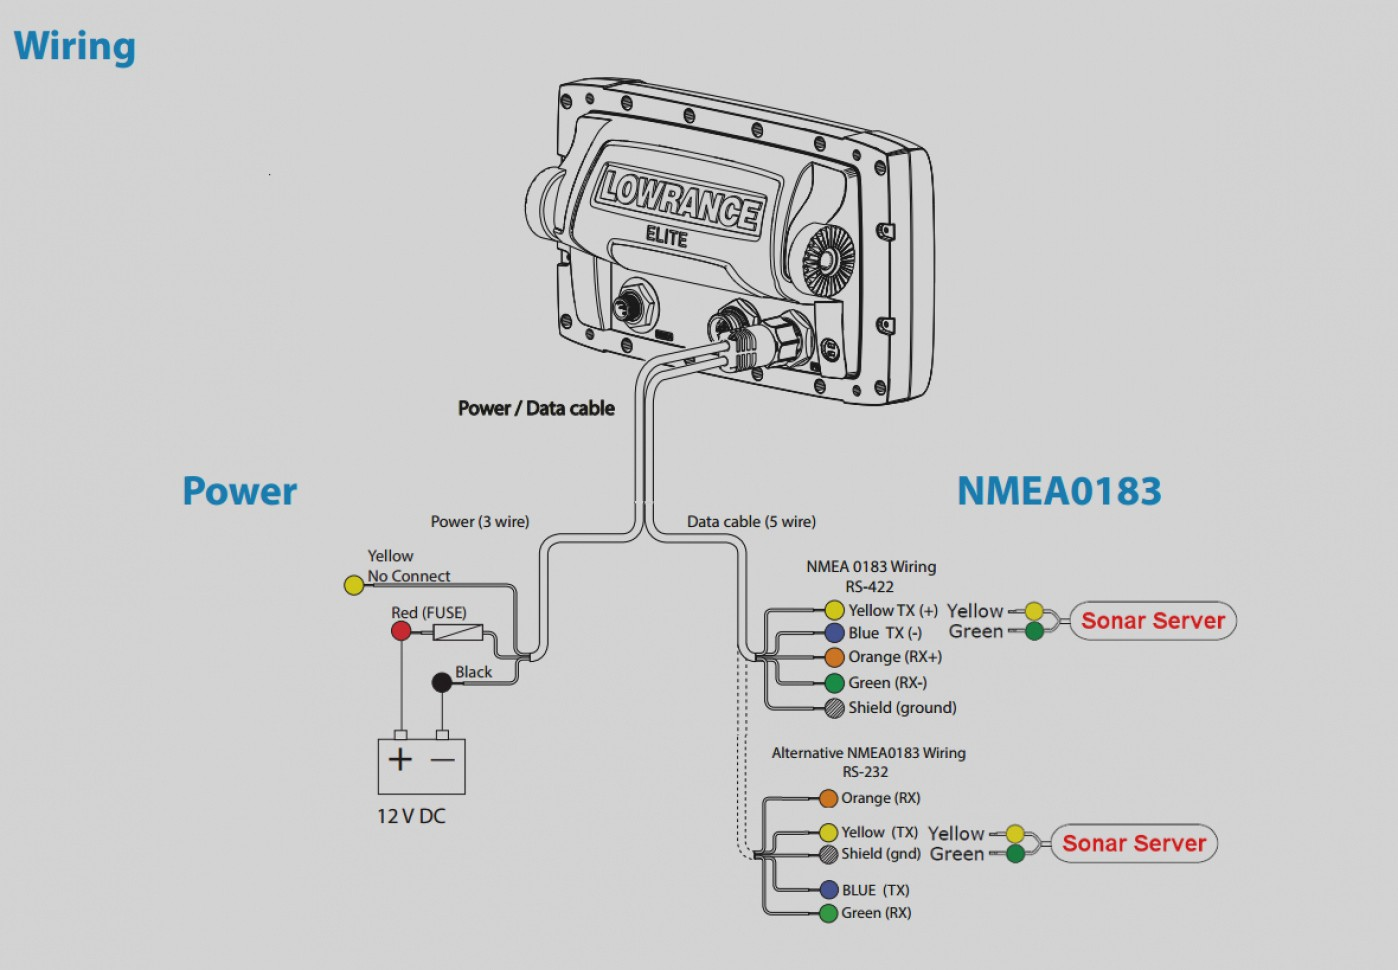 lowrance nmea 0183 wiring diagram free download all wiring diagram Free Honda Wiring Diagram